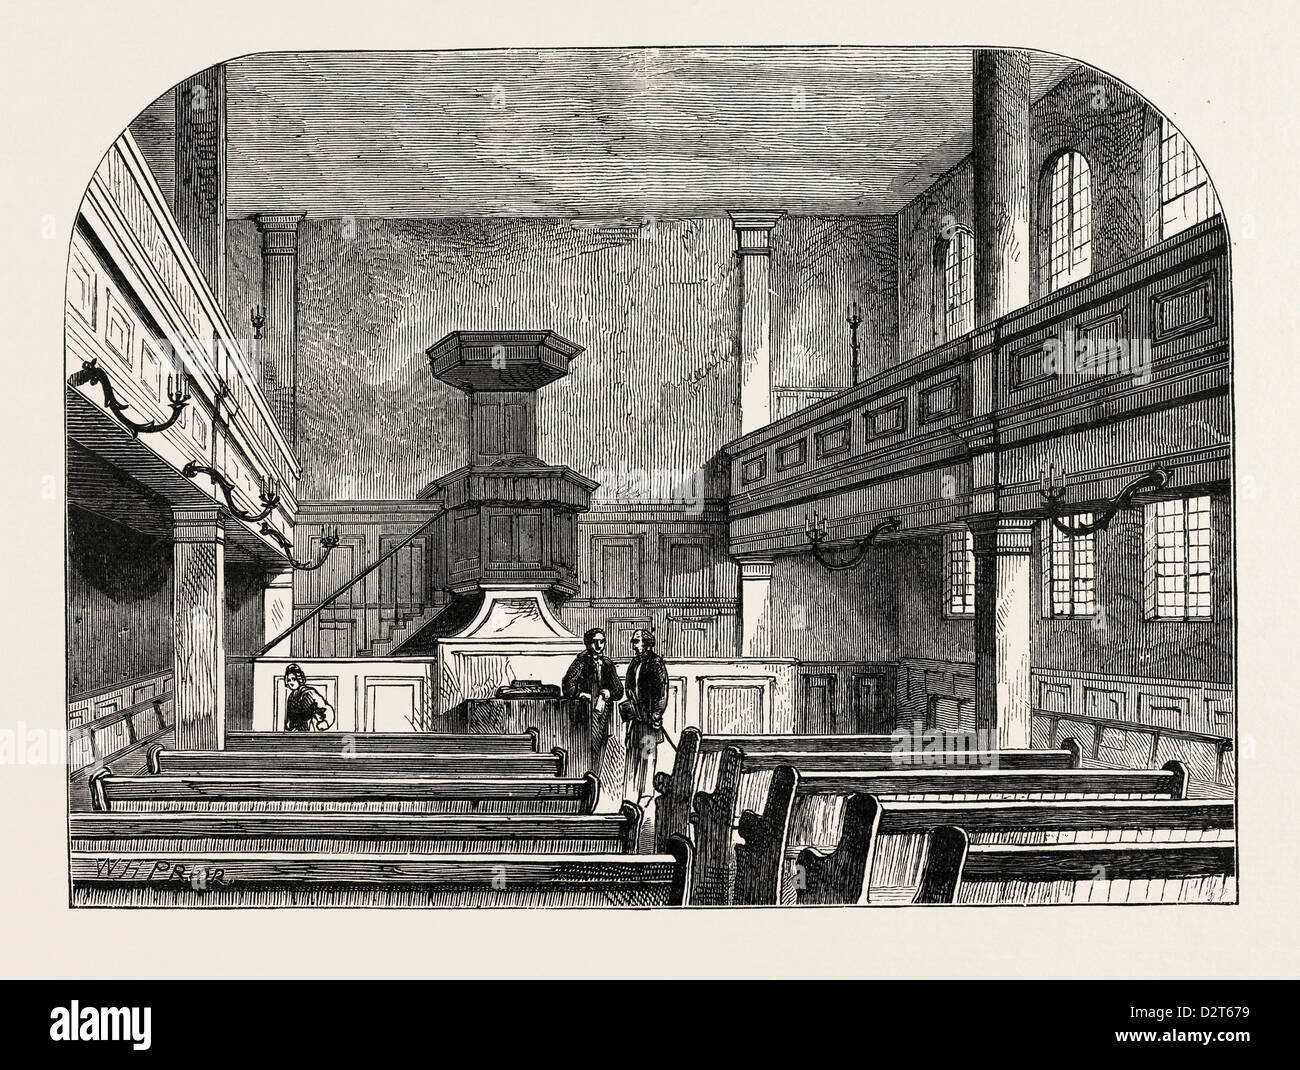 INTERIOR OF THE MORAVIAN CHAPEL IN FETTER LANE LONDON - Stock Image